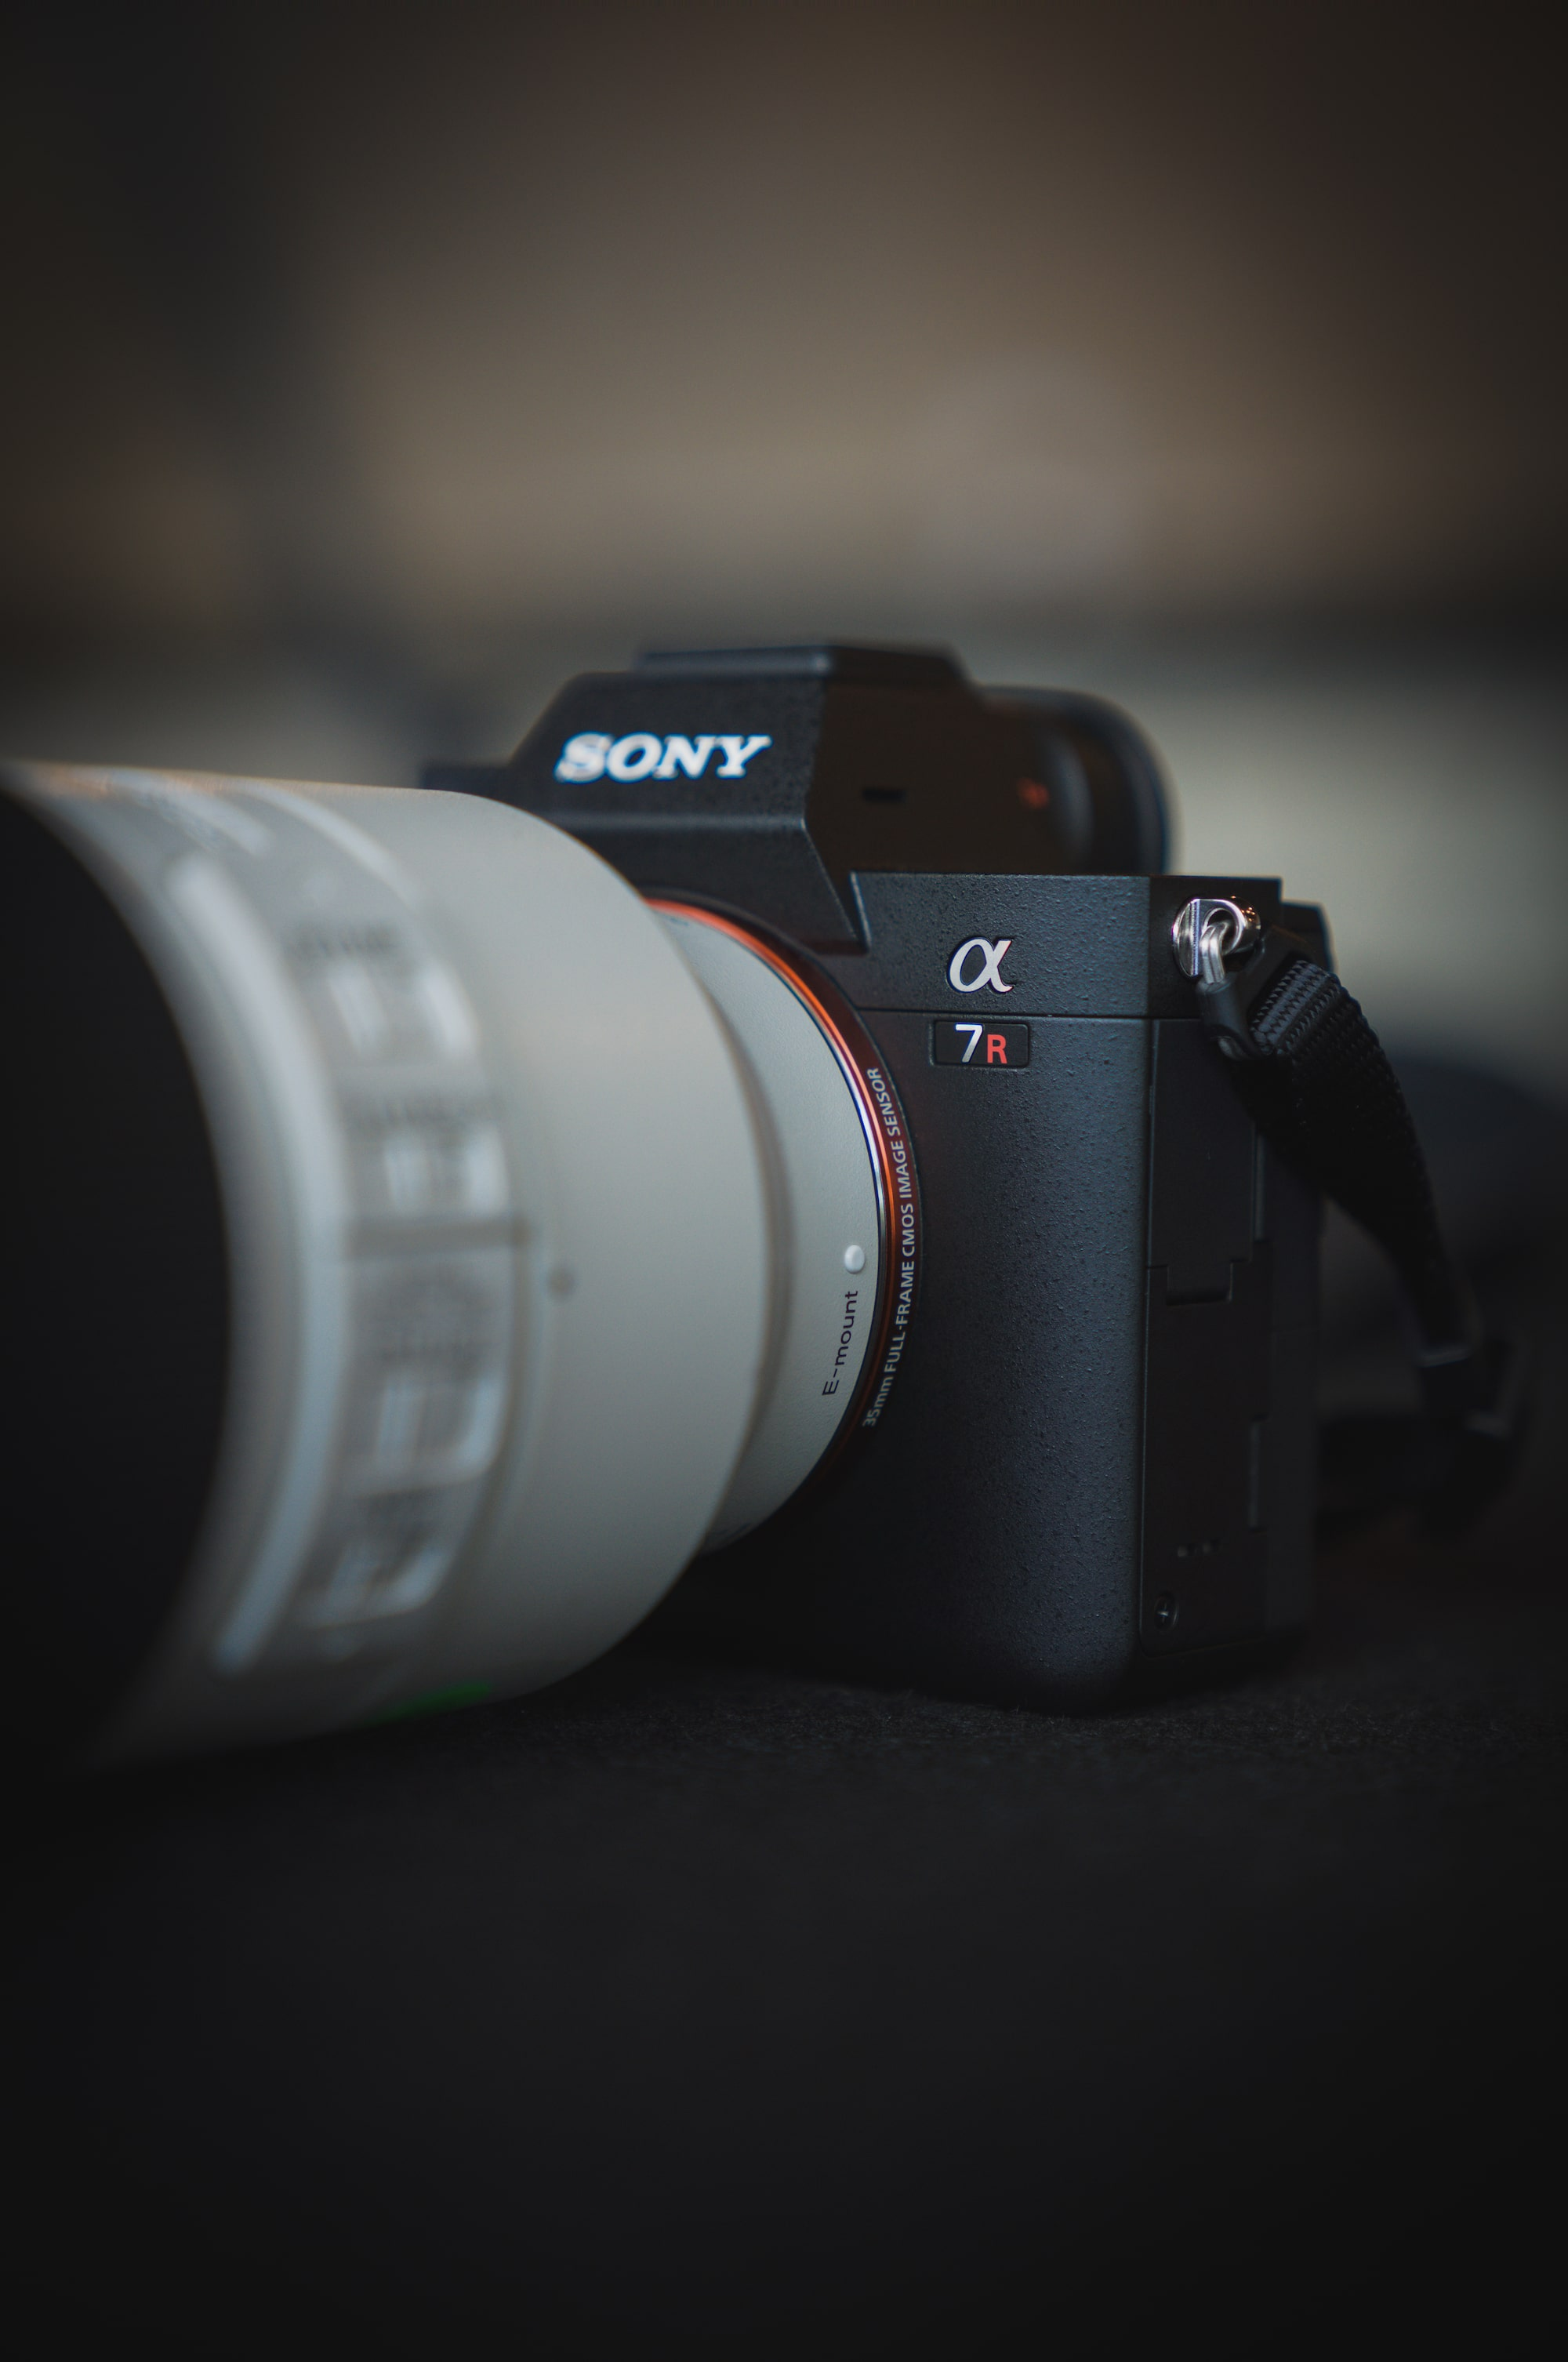 Sony Alpha 7R IV camera with 61 megapixels, versatile for various commercial shoots.